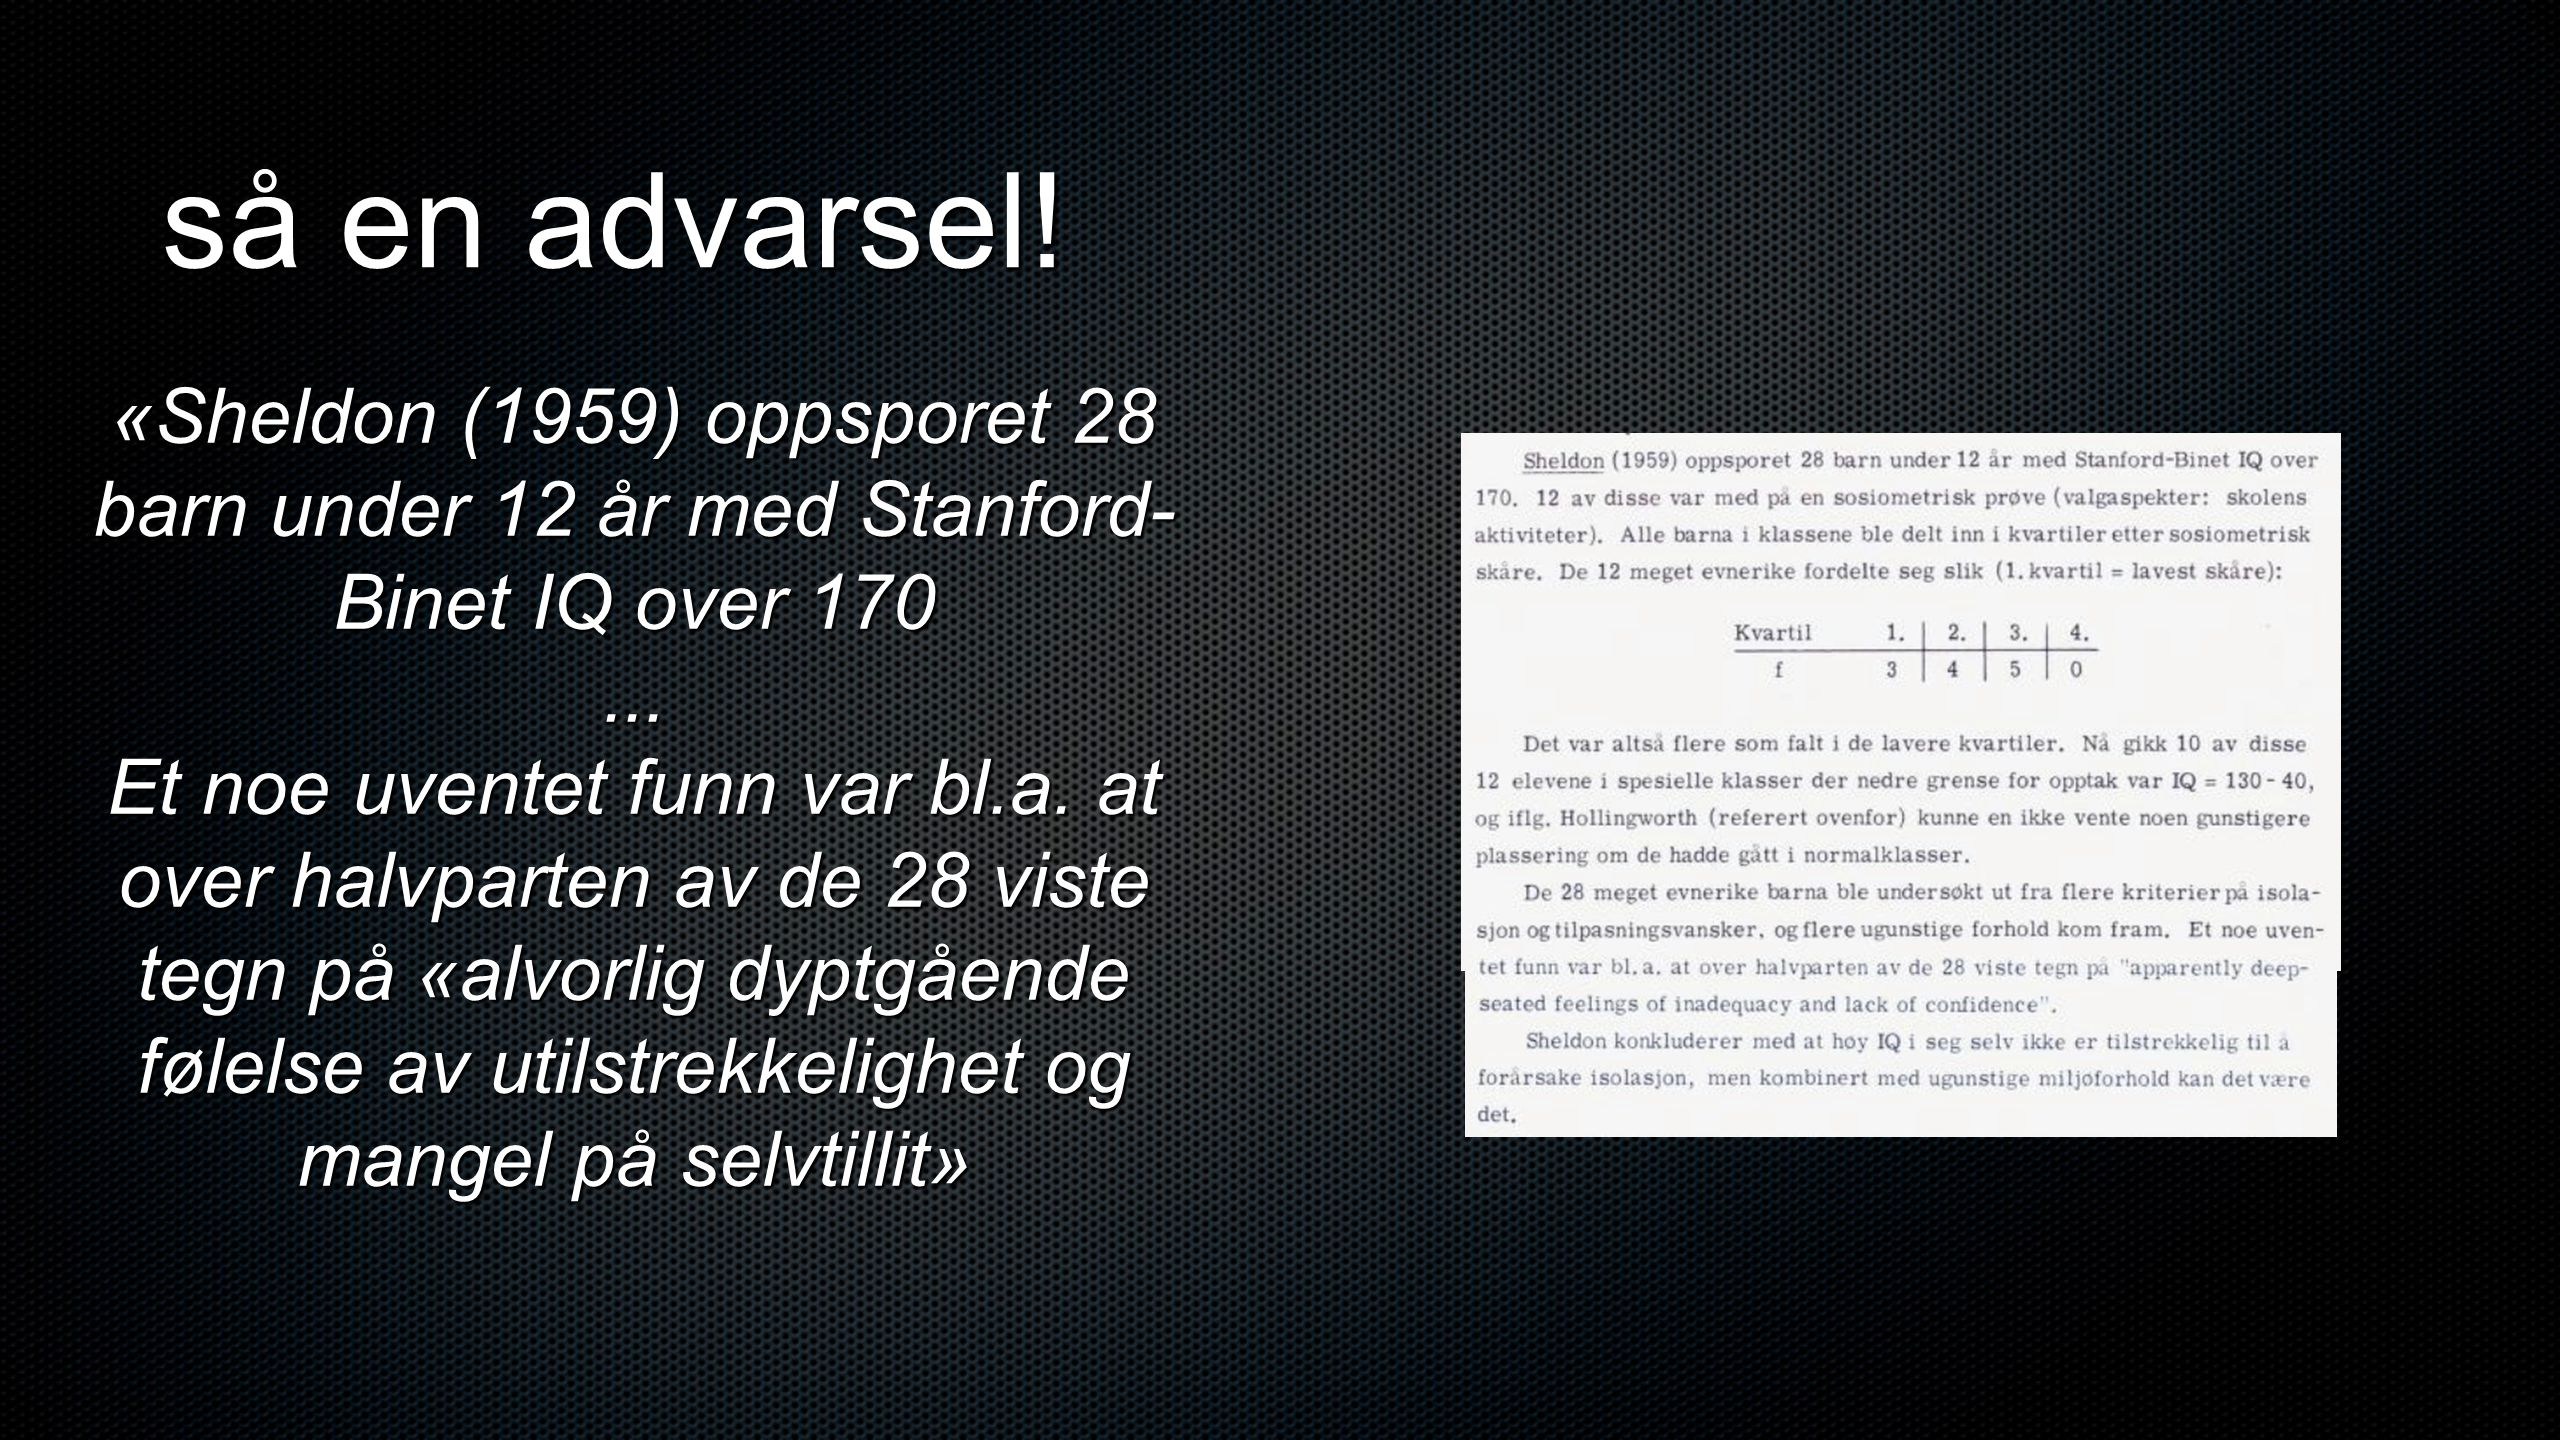 så en advarsel! «Sheldon (1959) oppsporet 28 barn under 12 år med Stanford-Binet IQ over